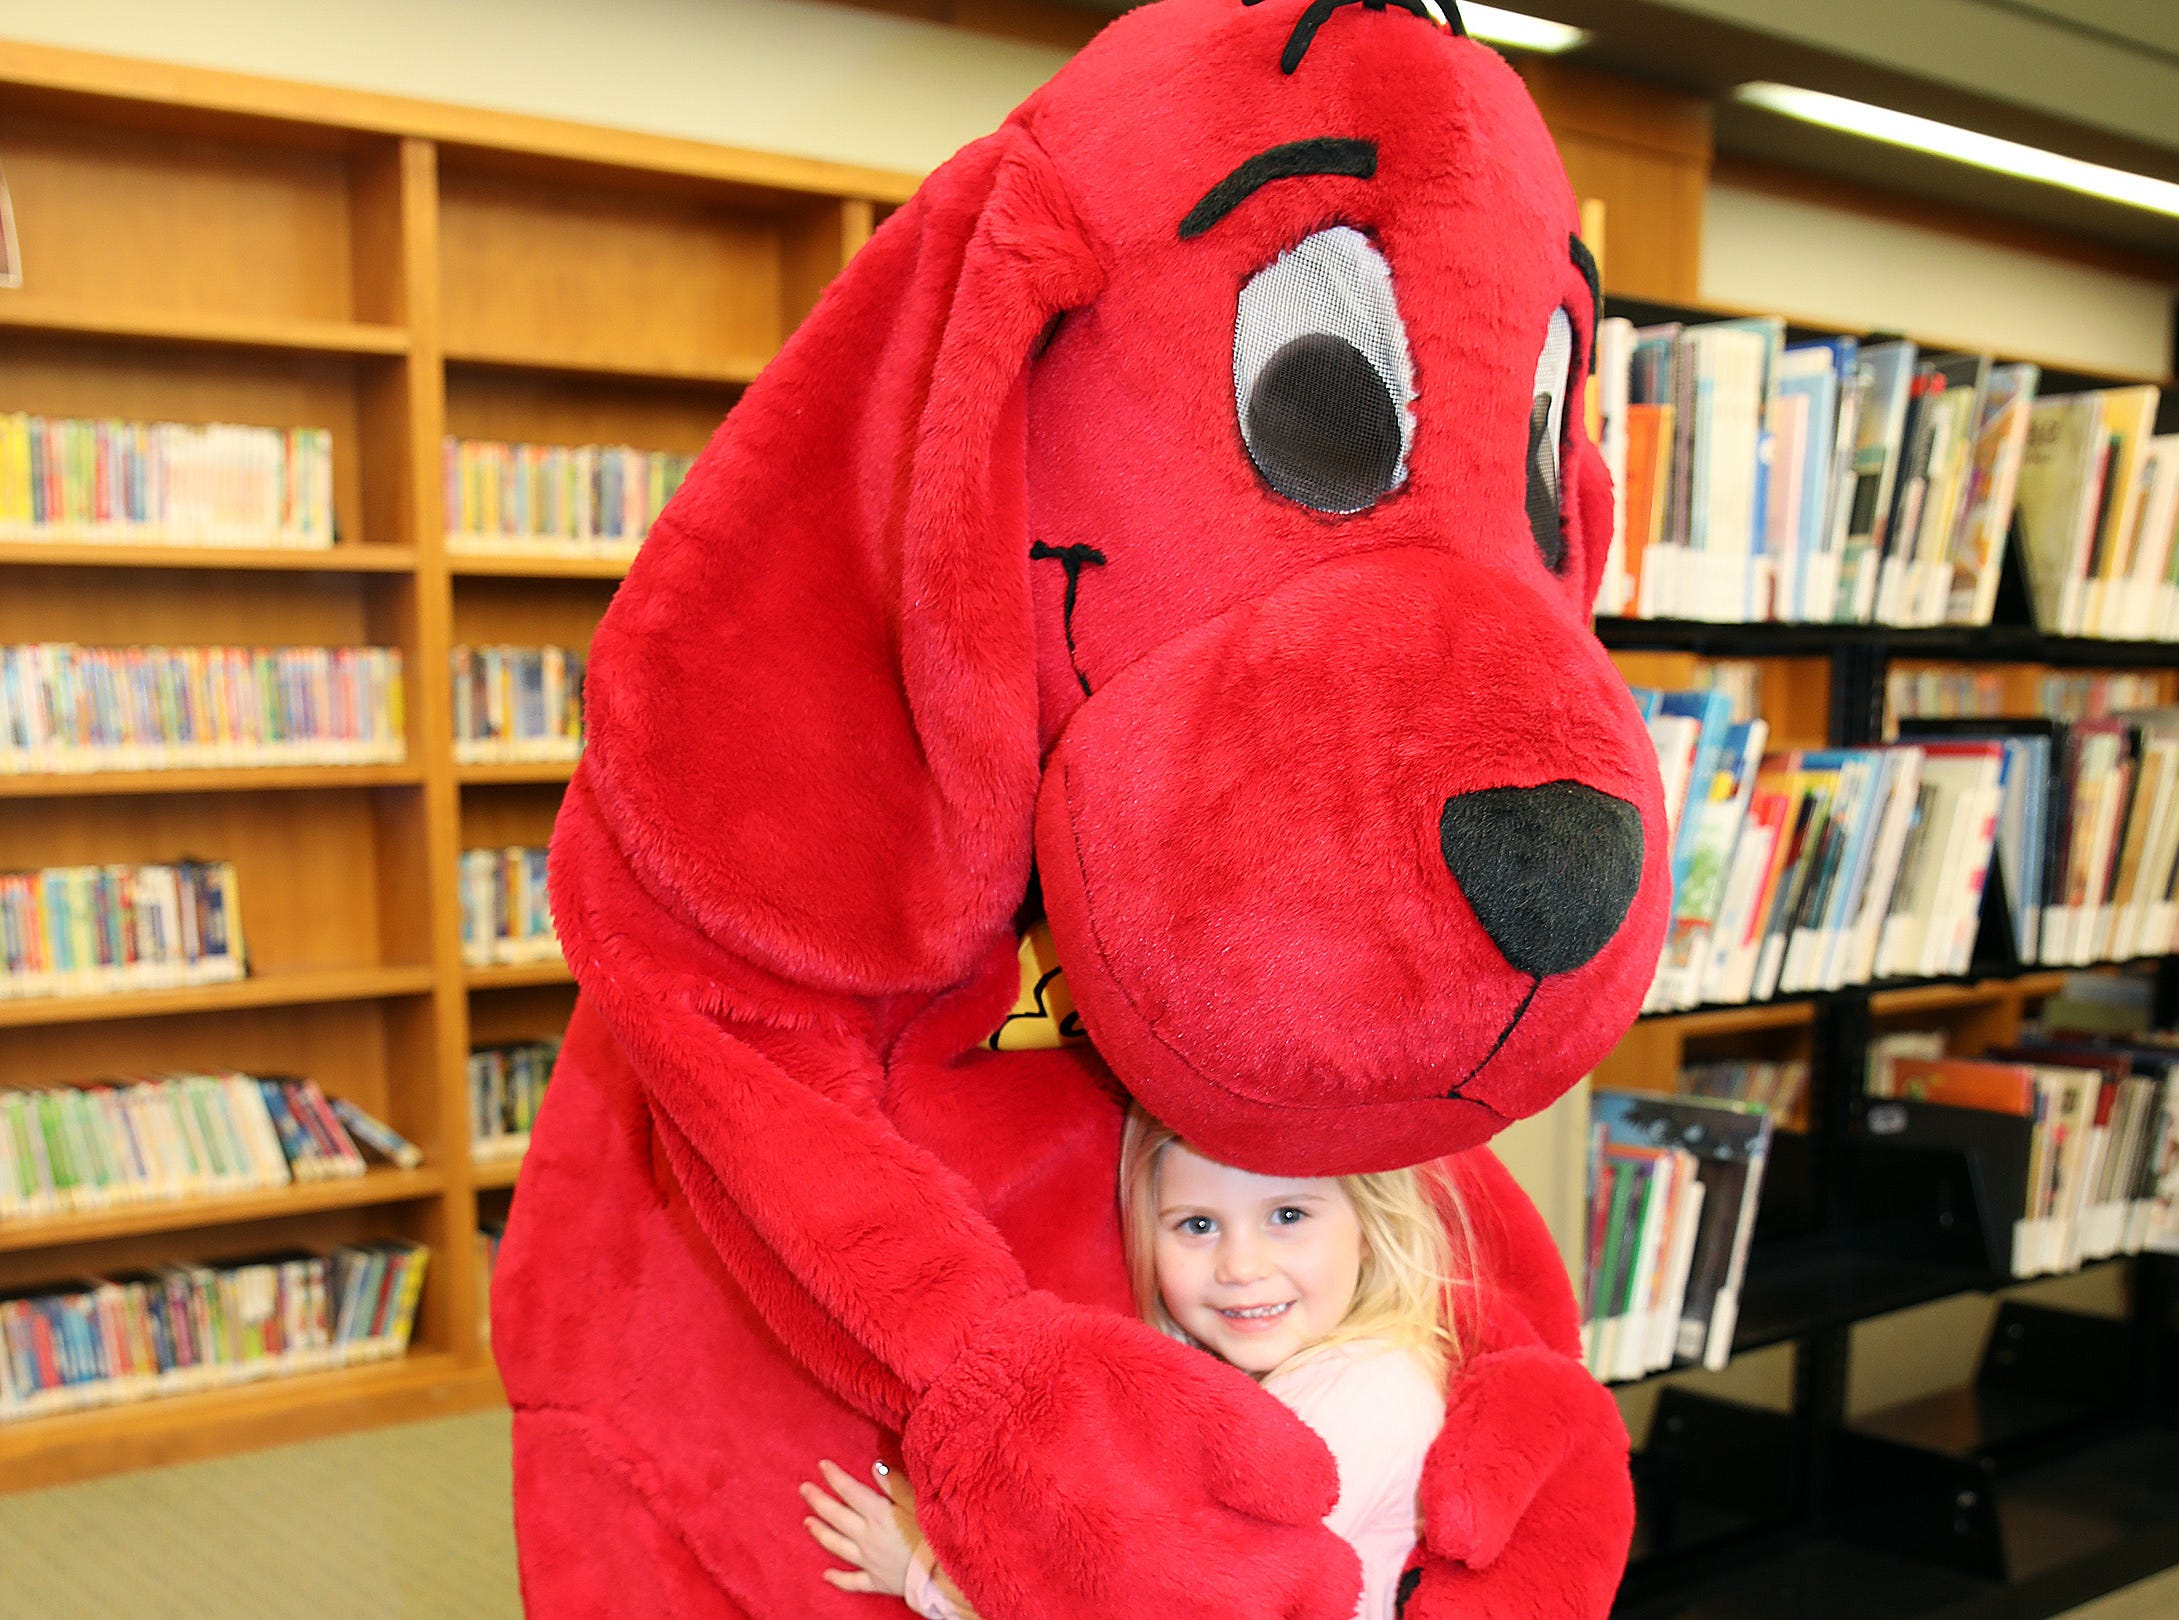 Clifford the Big Red Dog and Aubri Kucik, 3, of Ankeny hug during his birthday party at Kirkendall Public Library in Ankeny on Tuesday, Feb. 5, 2019.